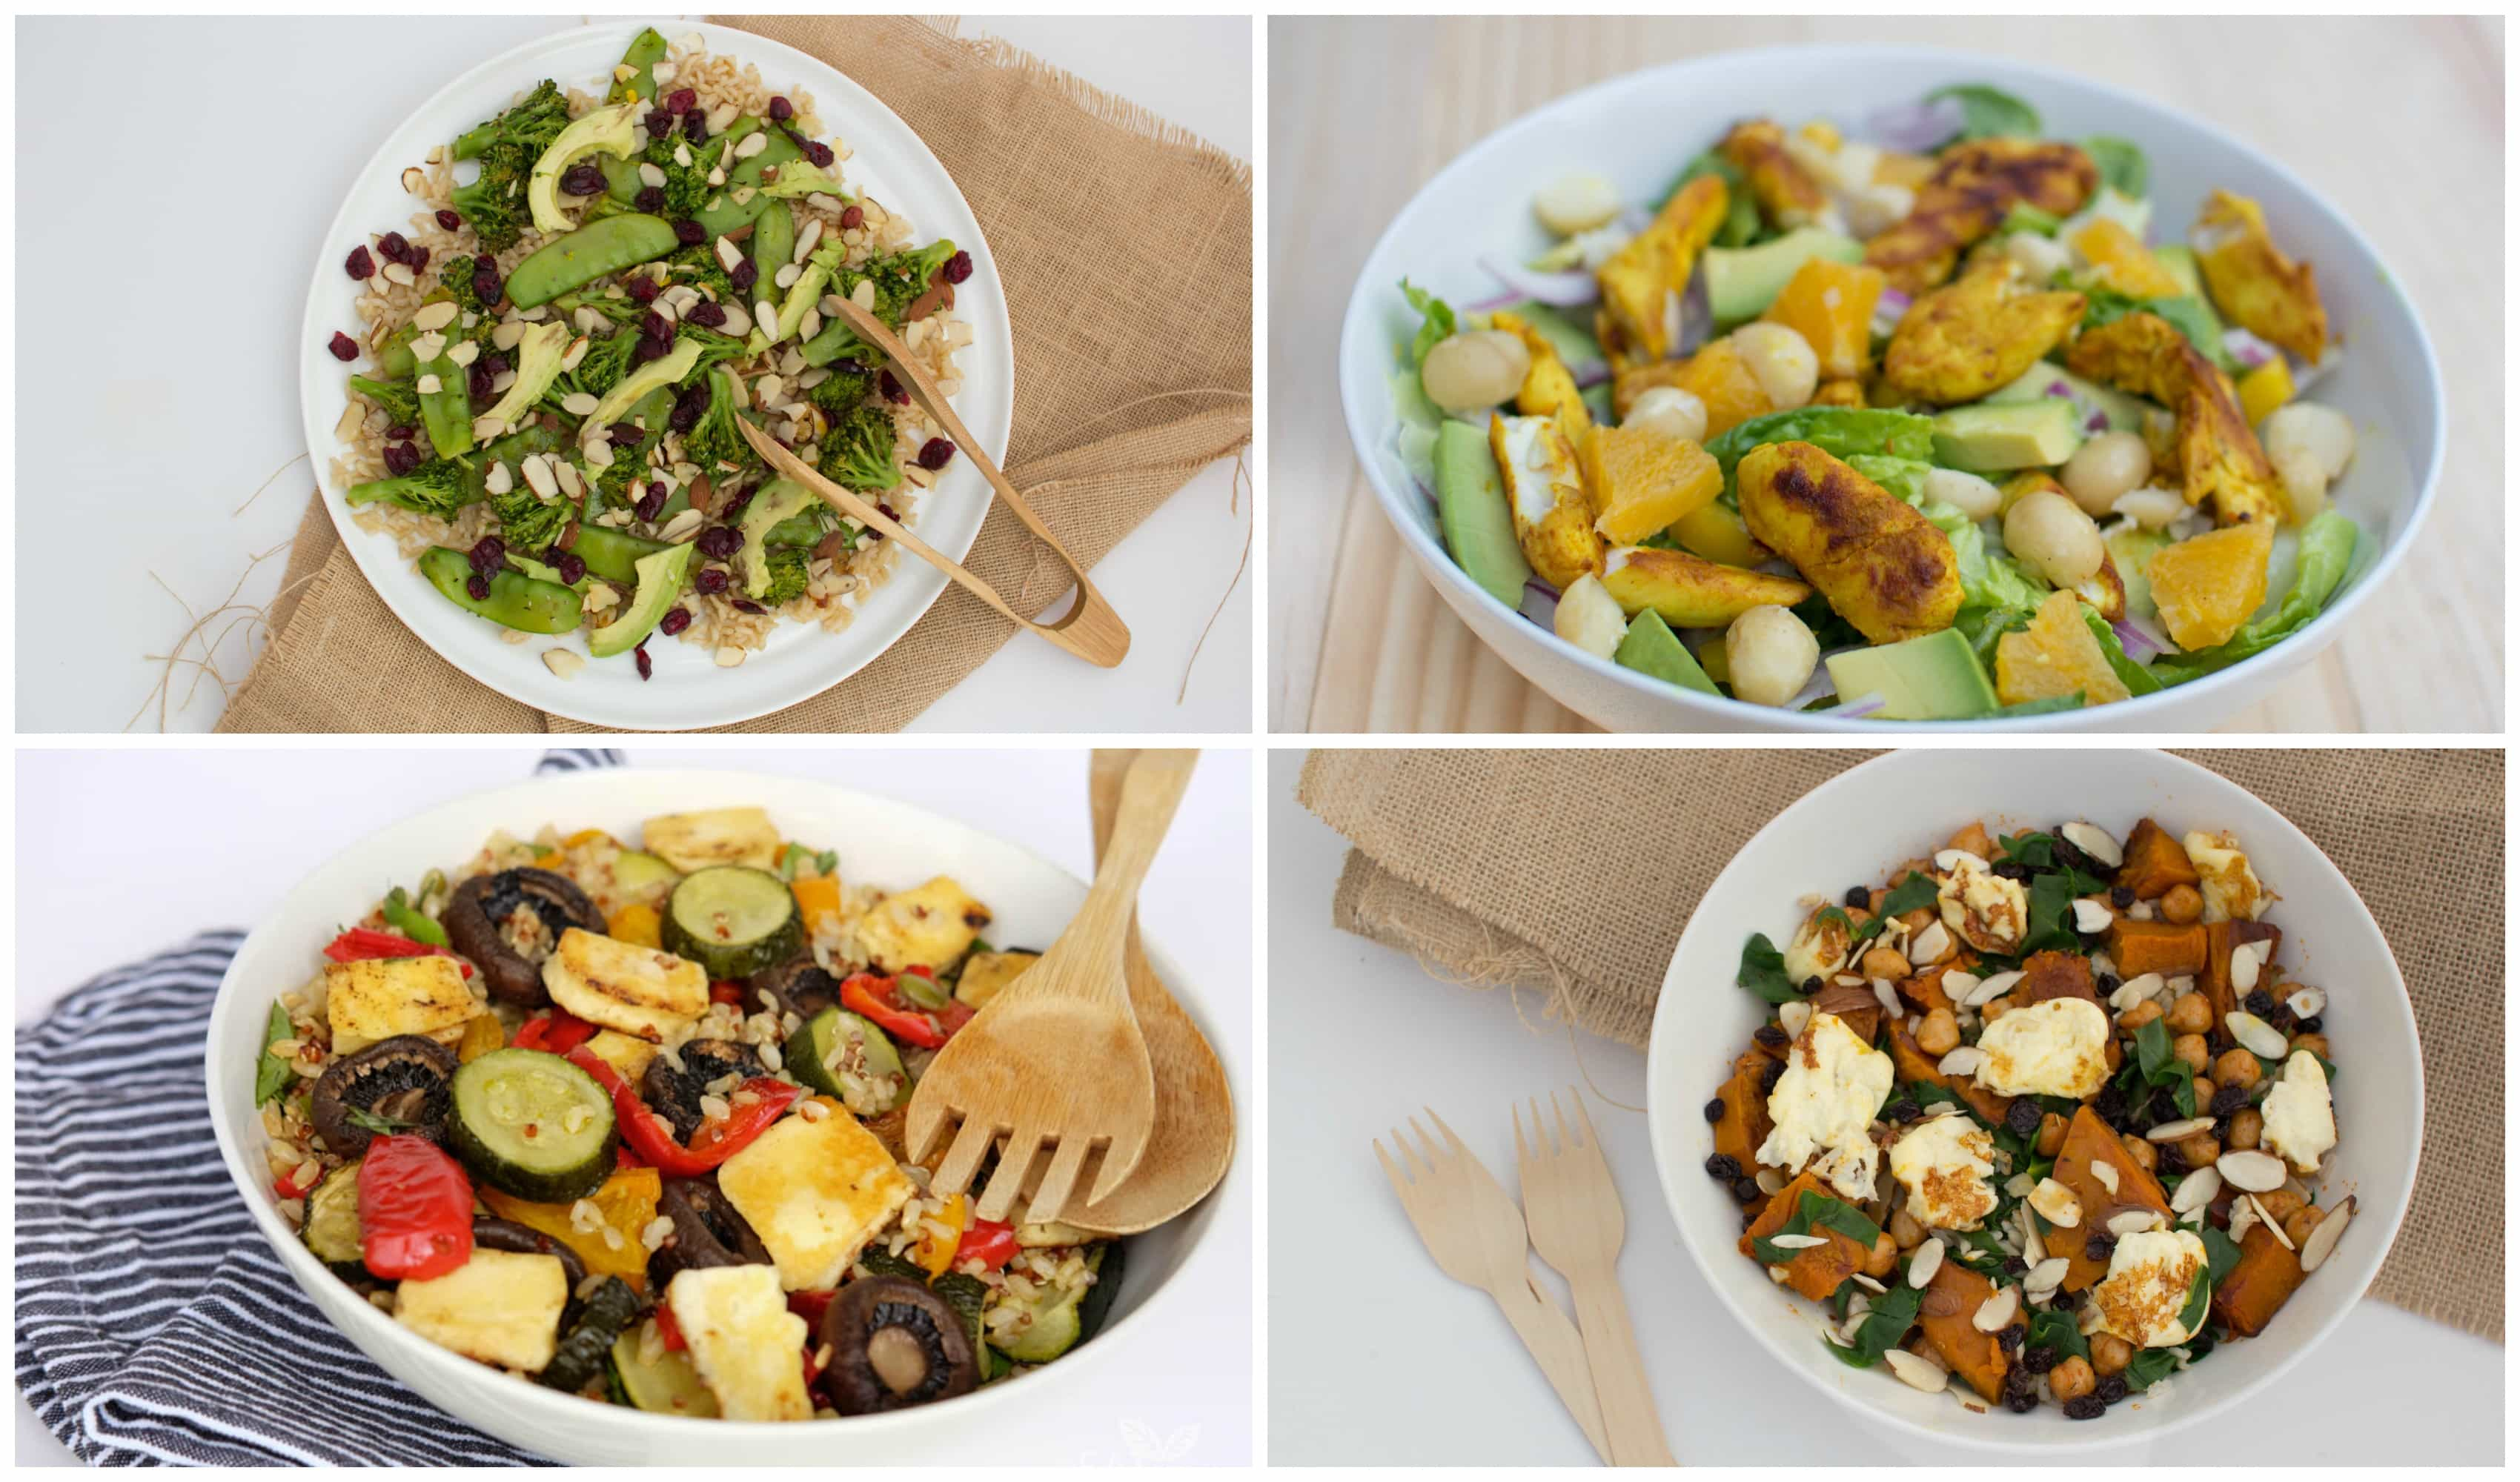 My top four nourishing, delicious summer salad ideas